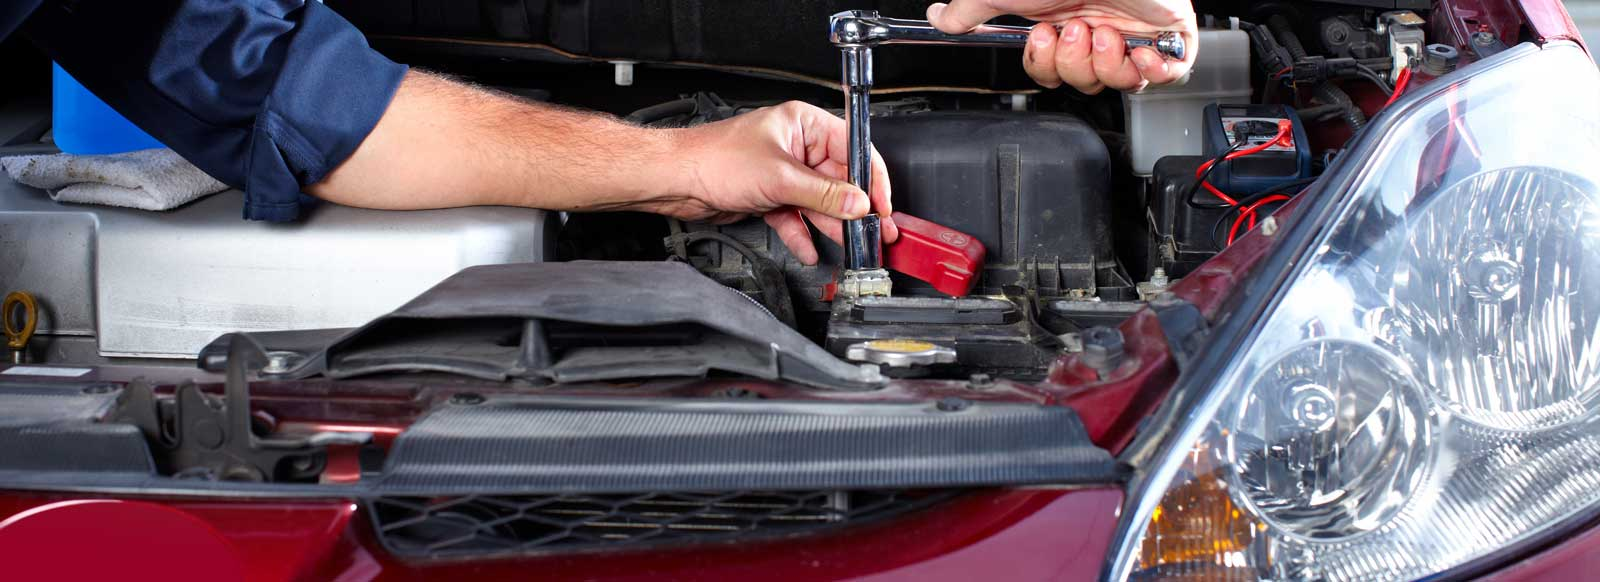 mechanic services under hood